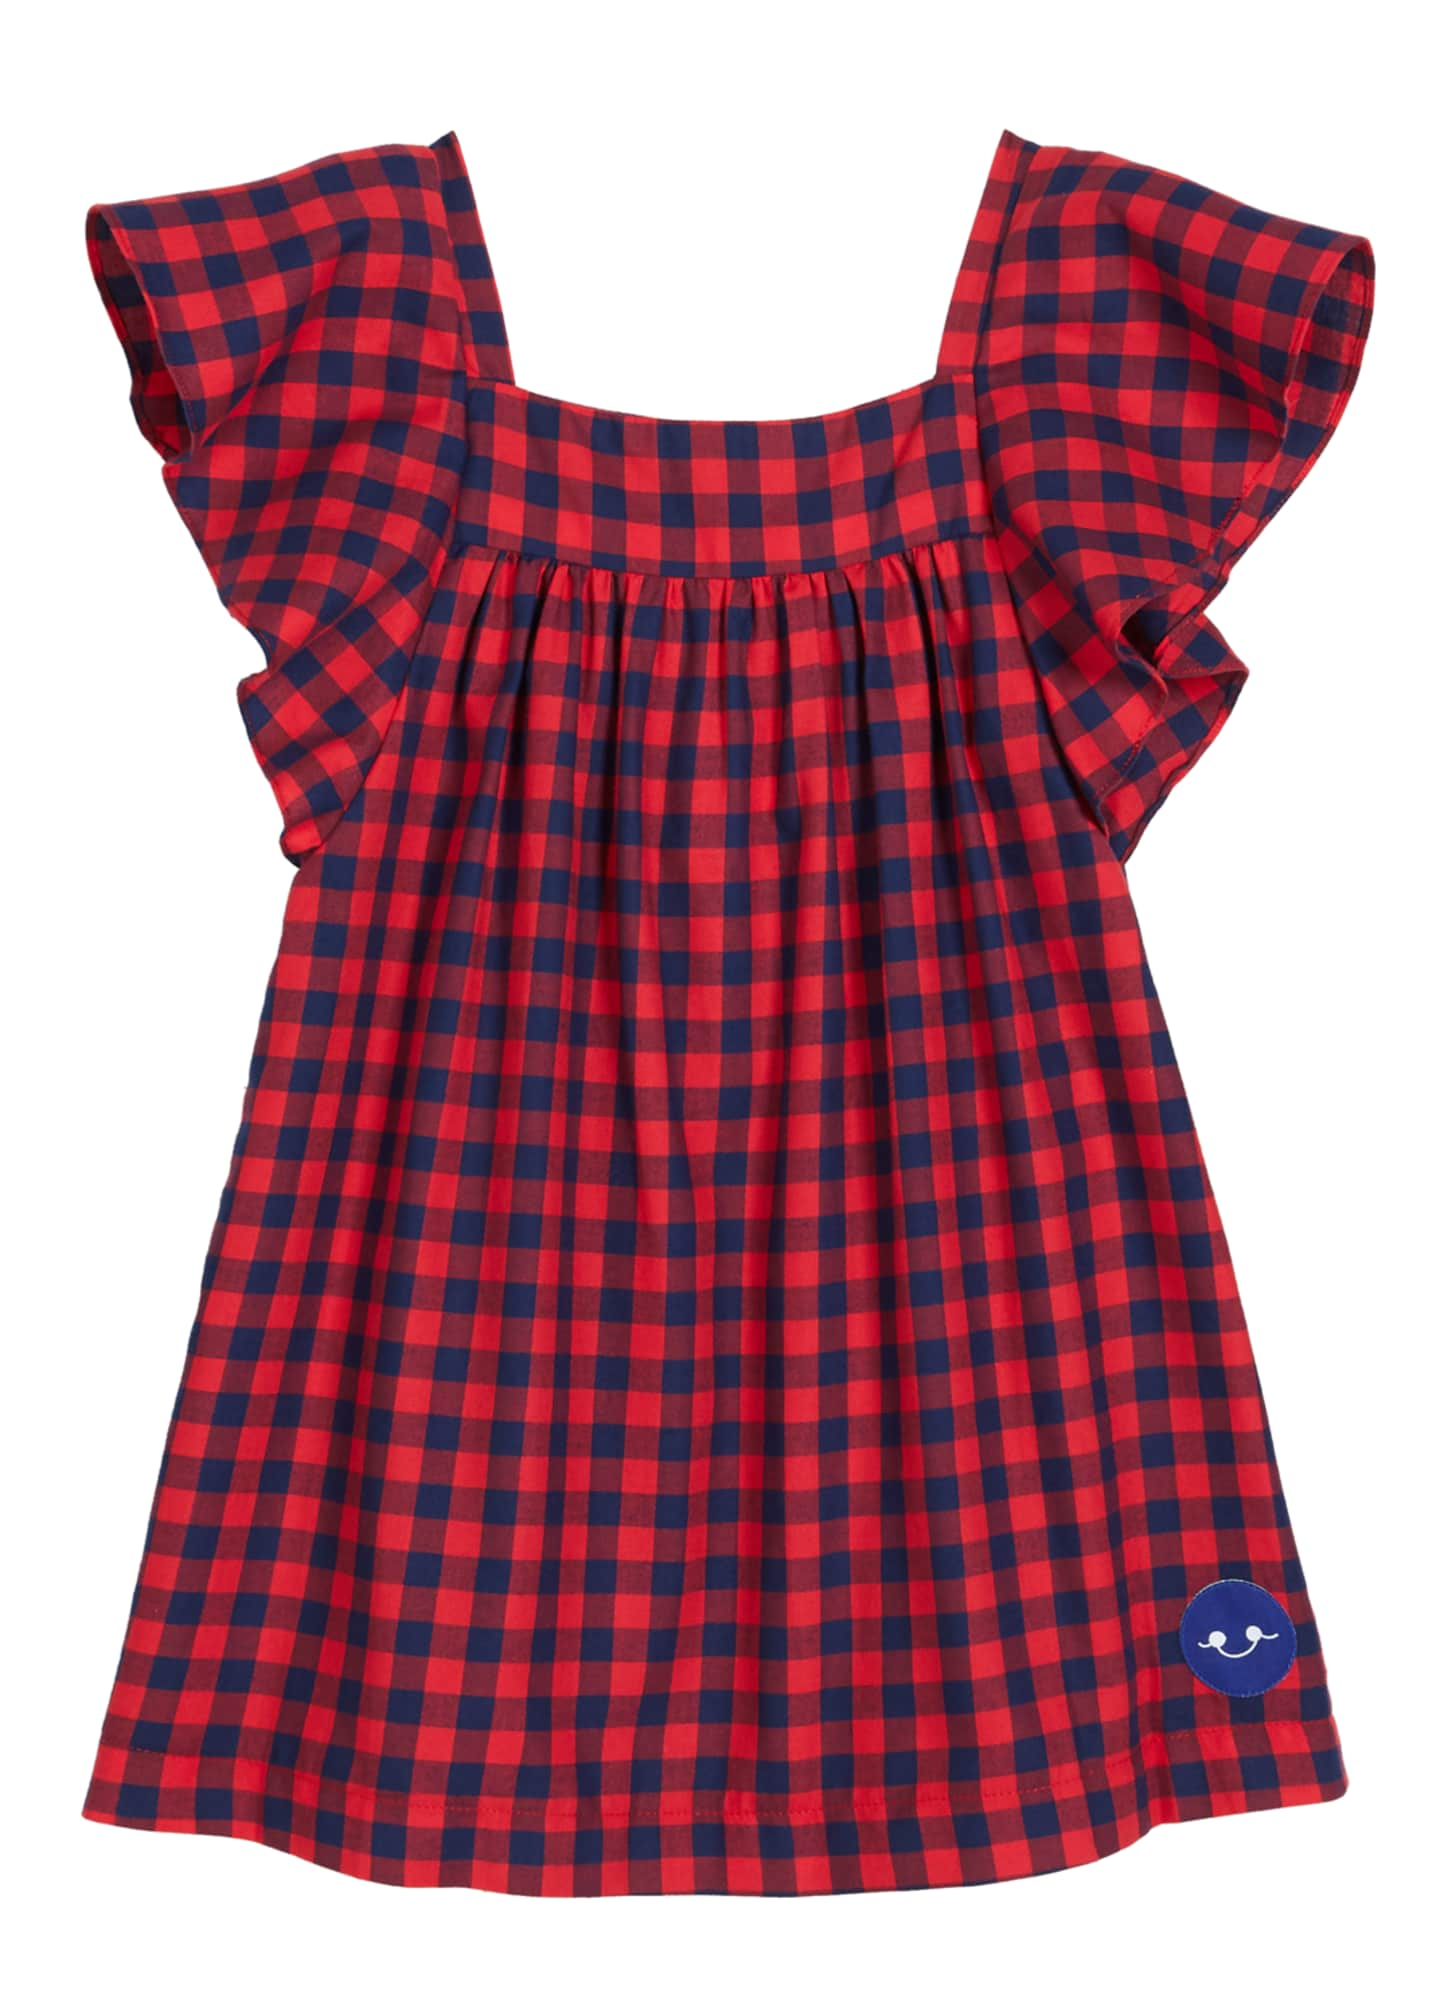 Smiling Button School Yard Check Flutter-Sleeve Top, Size